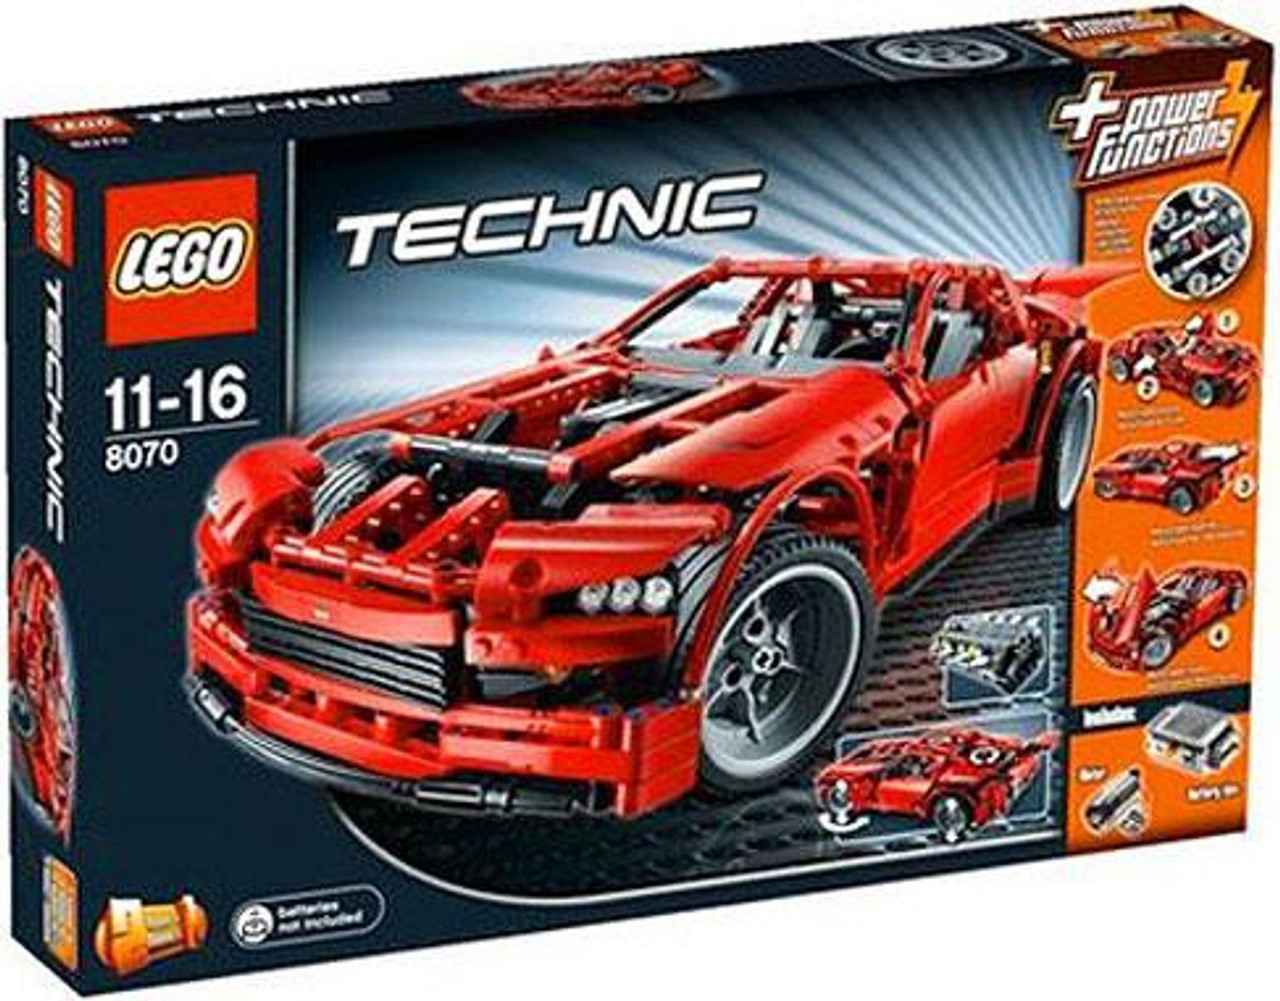 LEGO Technic Power Functions Supercar Set #8070